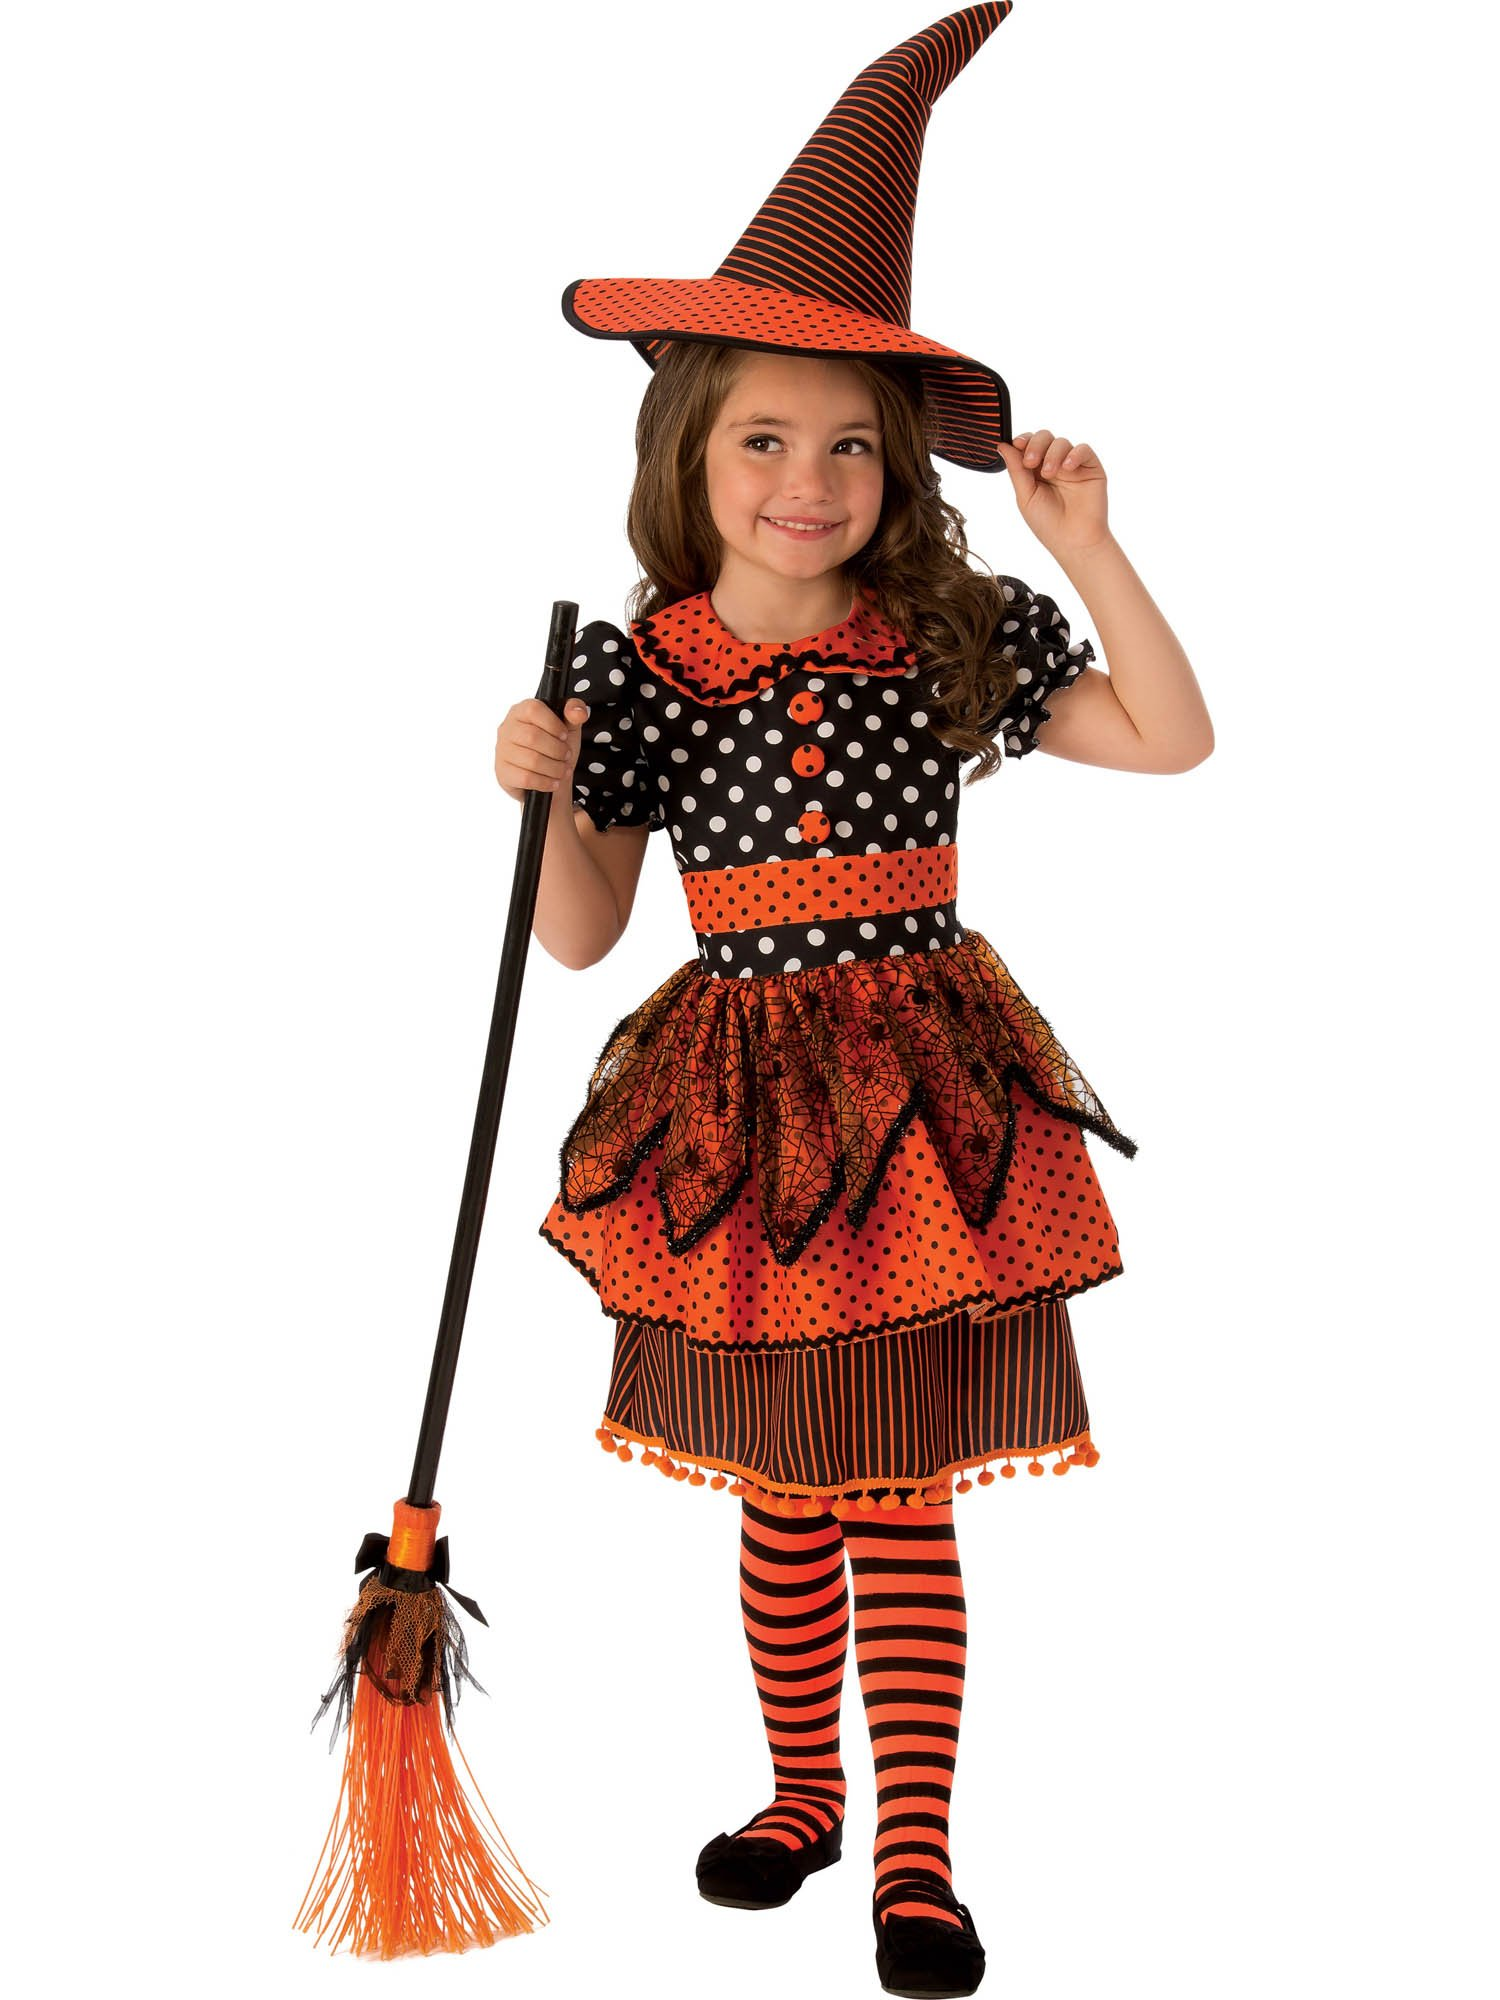 - 81BWF9dQPCL - Rubie's Costume Co – Girls Polka Dot Witch Costume